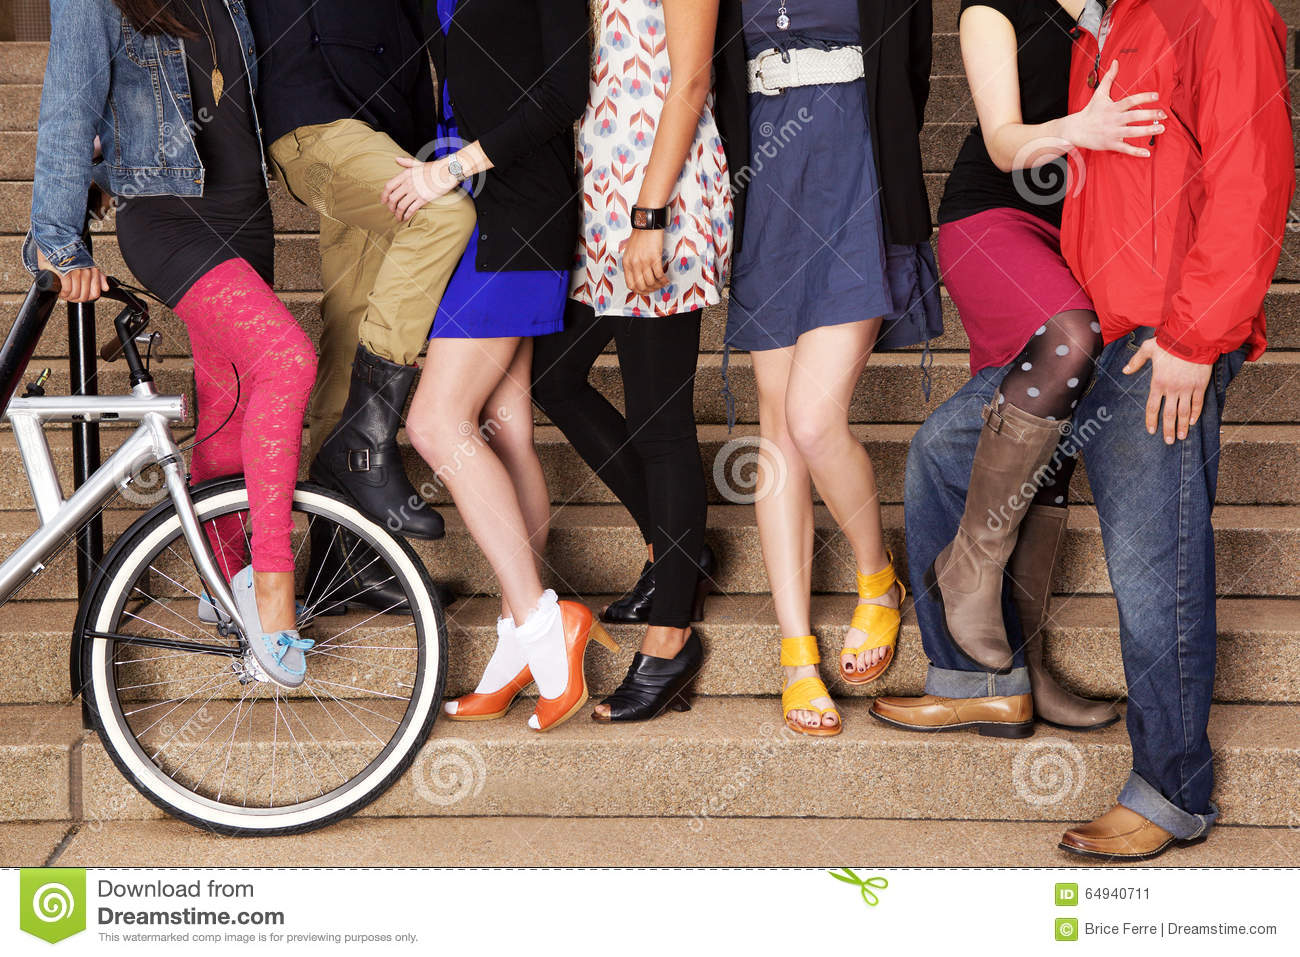 7 young people on stairs, with a bicycle.